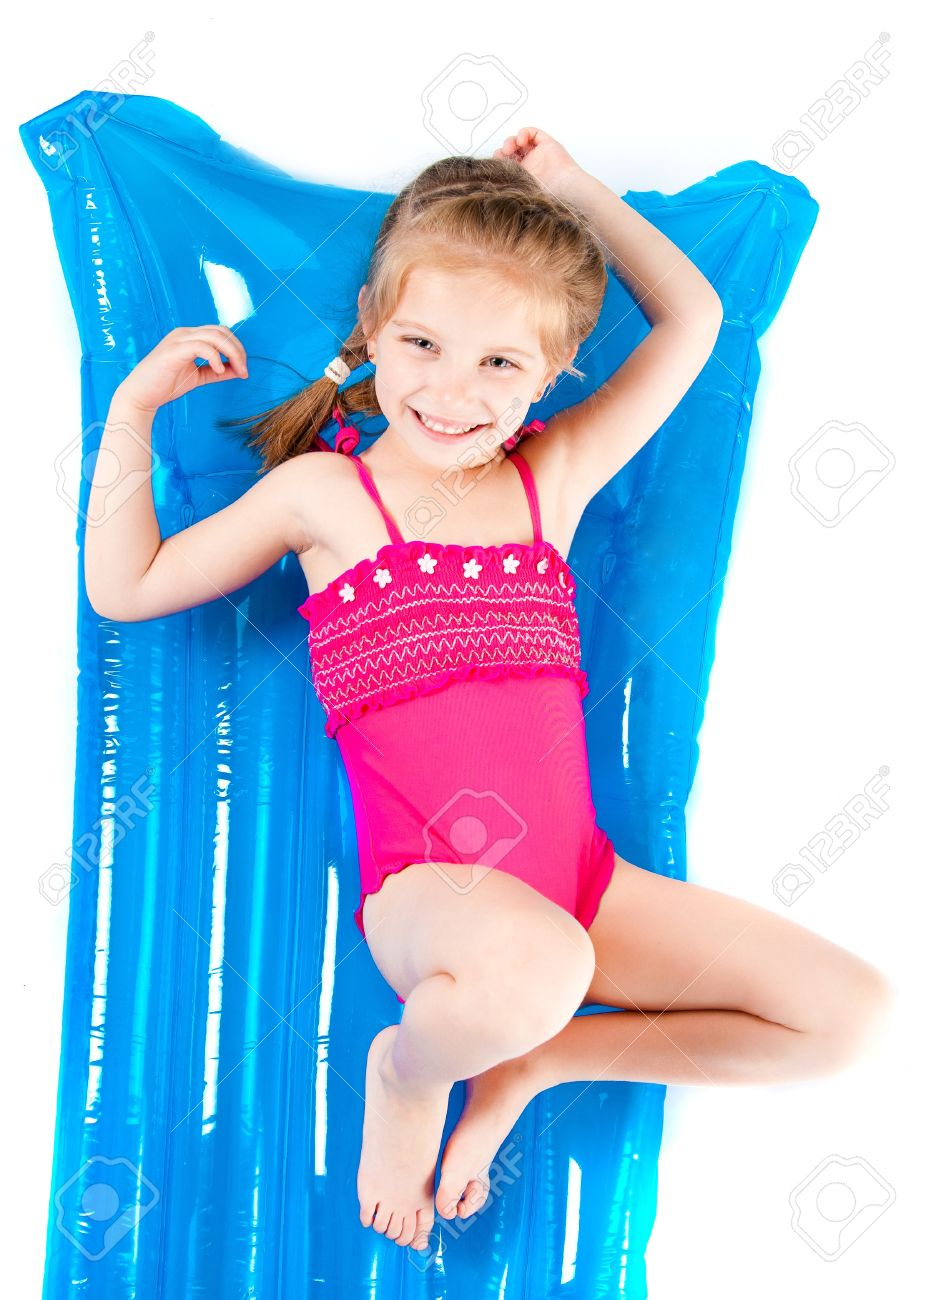 cute little girl in a swimming suit on an inflatable mattress stock